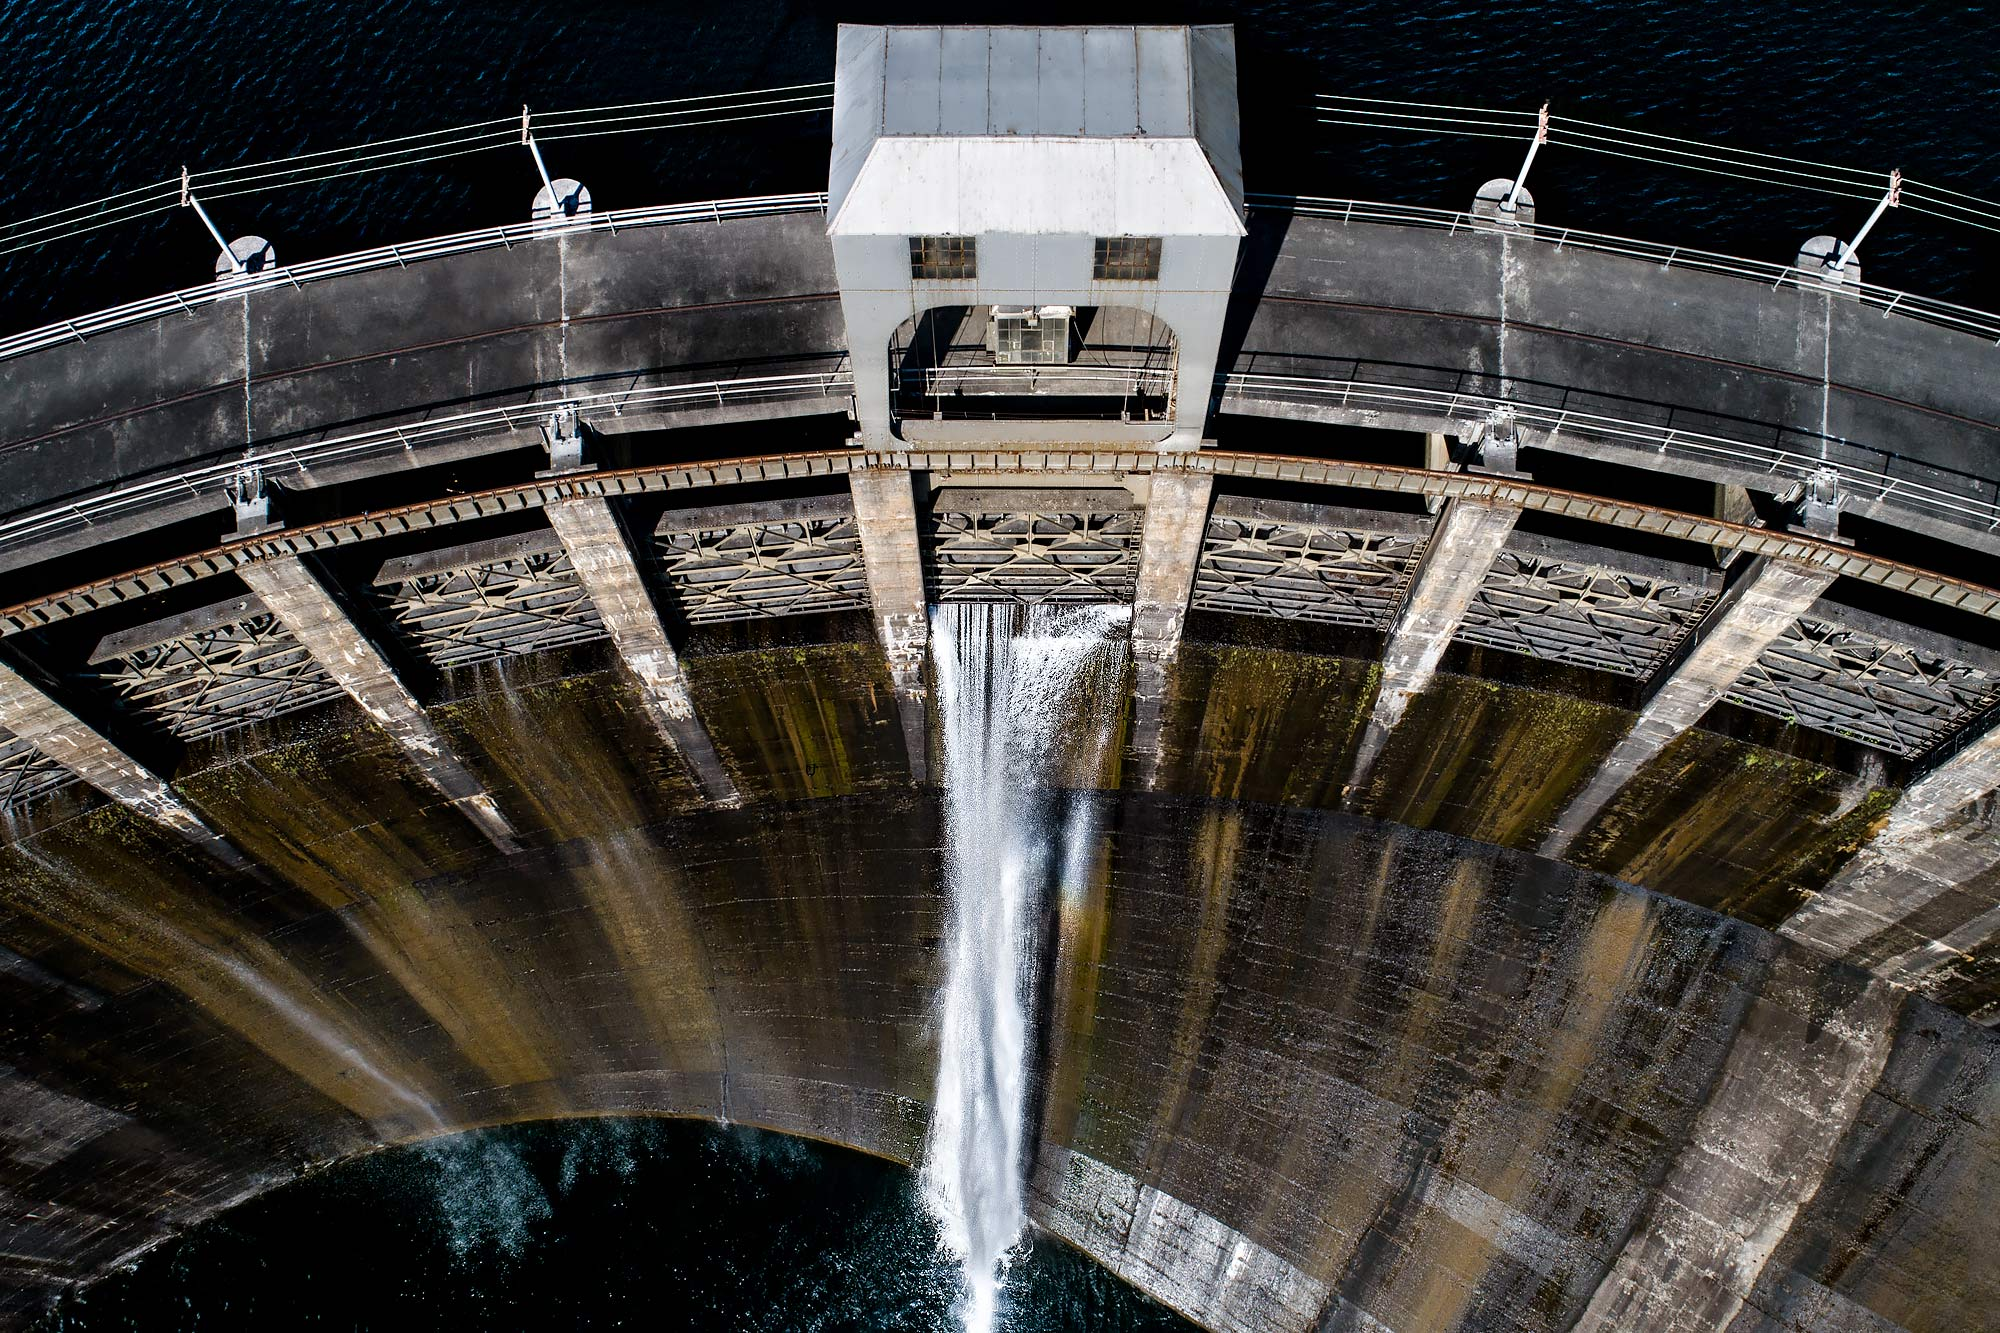 A close aerial shot of a hydroelectric dam with overflow gate opening |  Scott Gable industrial photographer